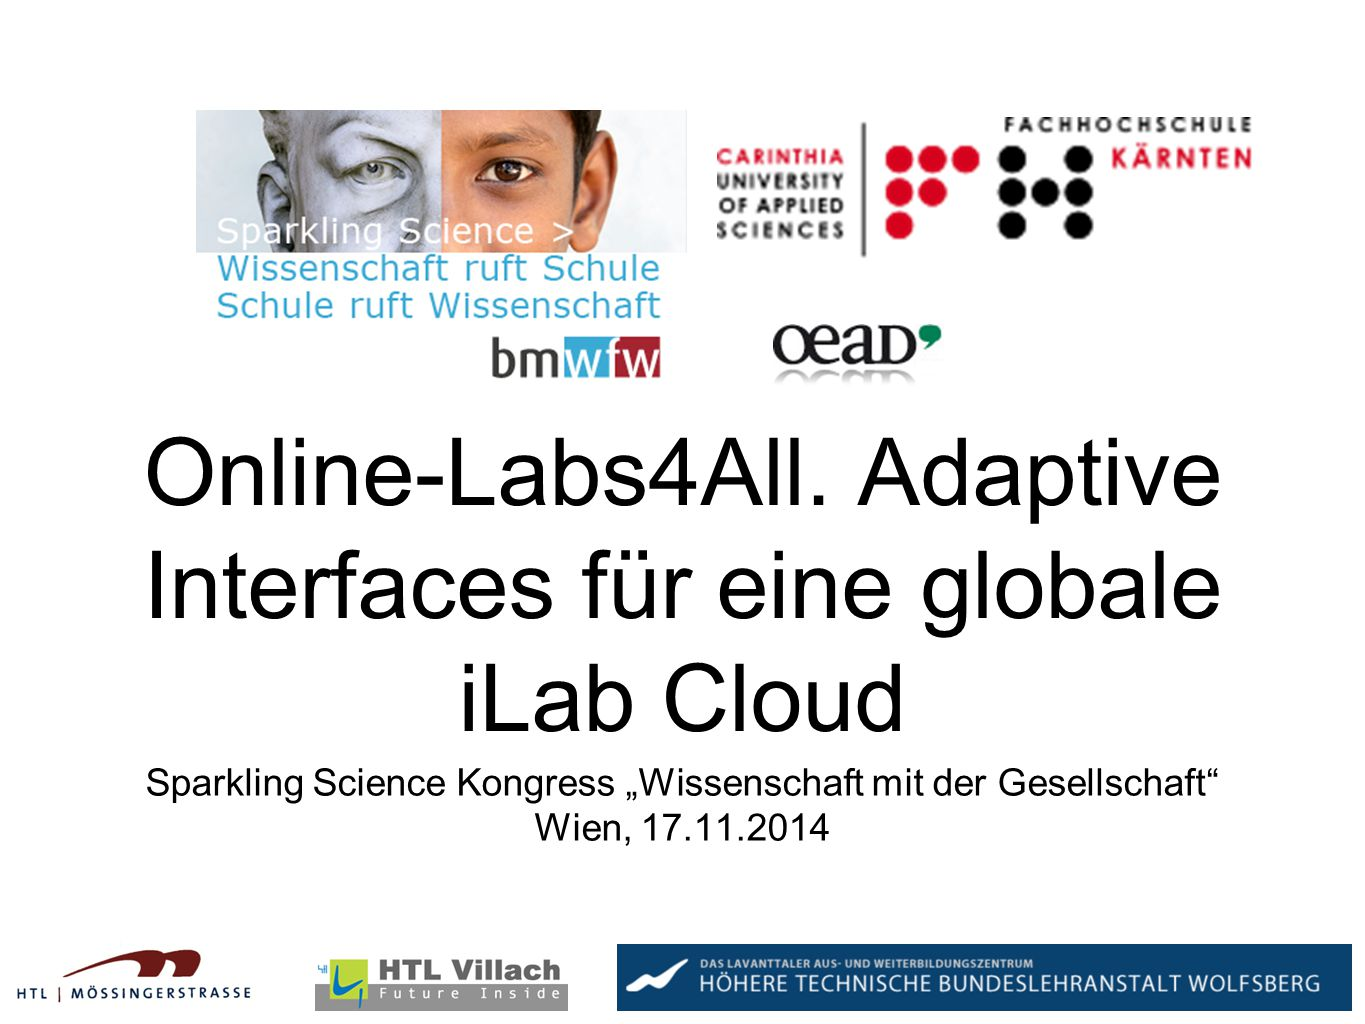 Online-Labs4All. Adaptive Interfaces für eine globale iLab Cloud